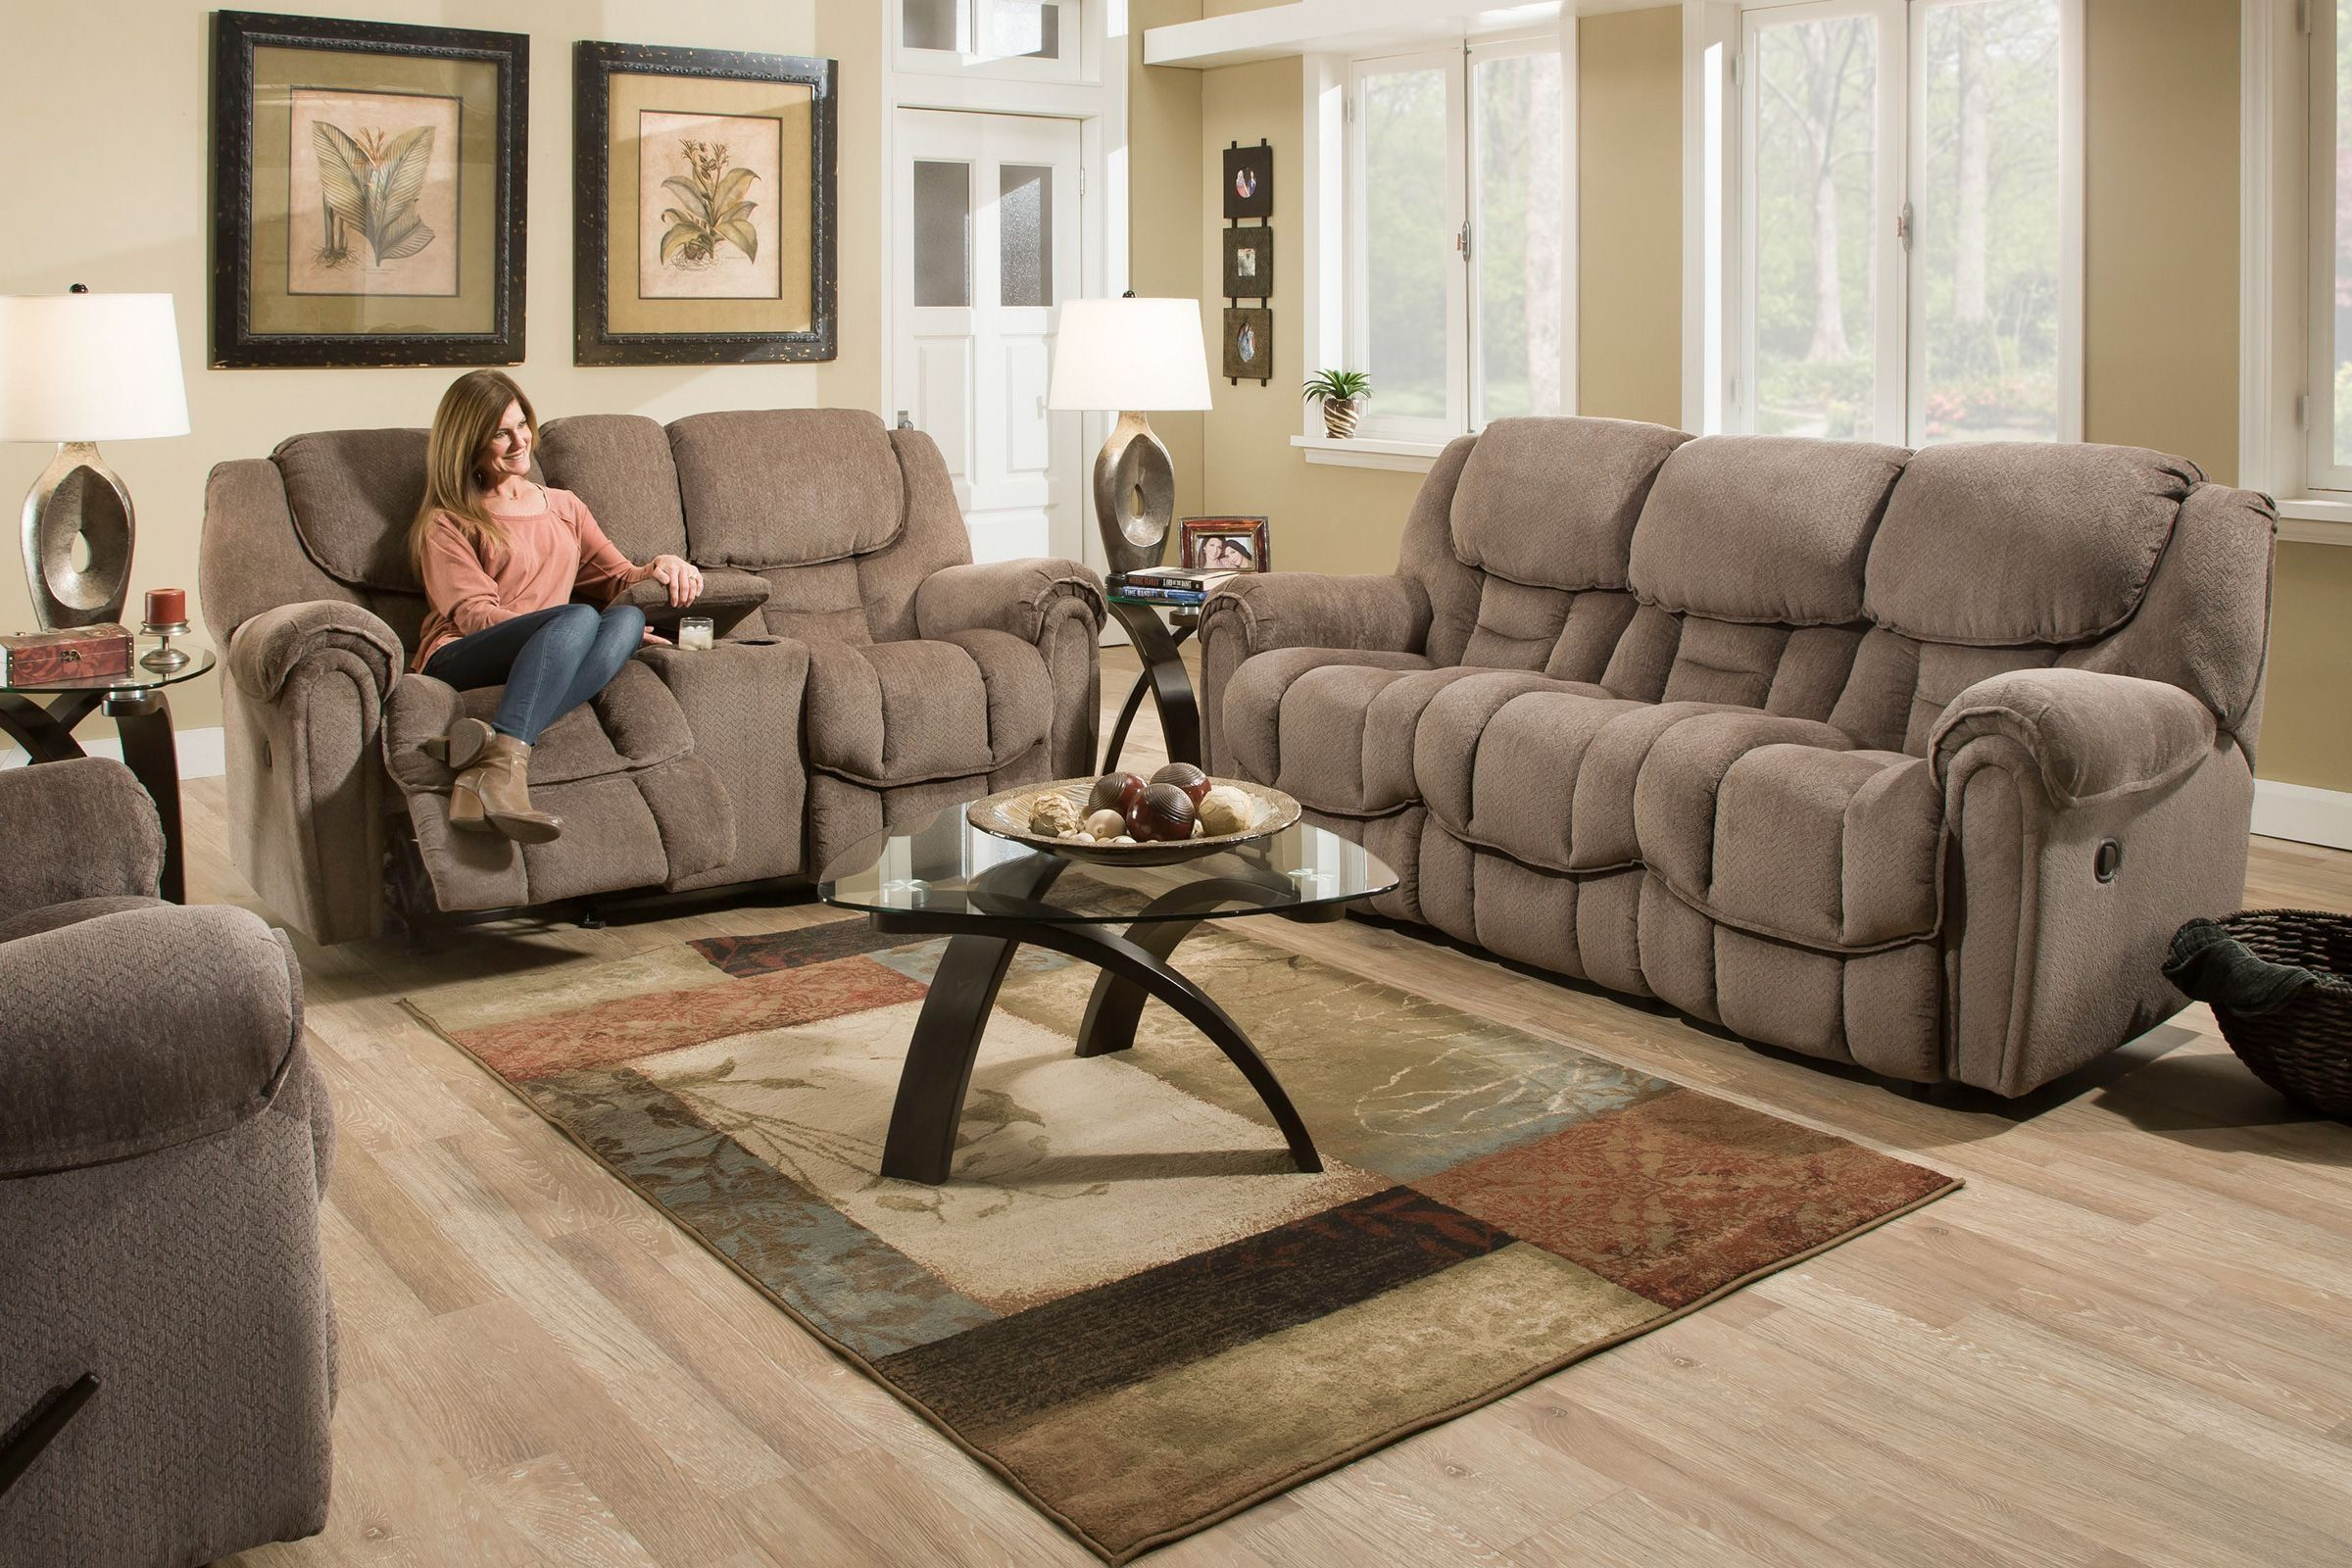 Emery Manual Rocking Reclining Loveseat with Console